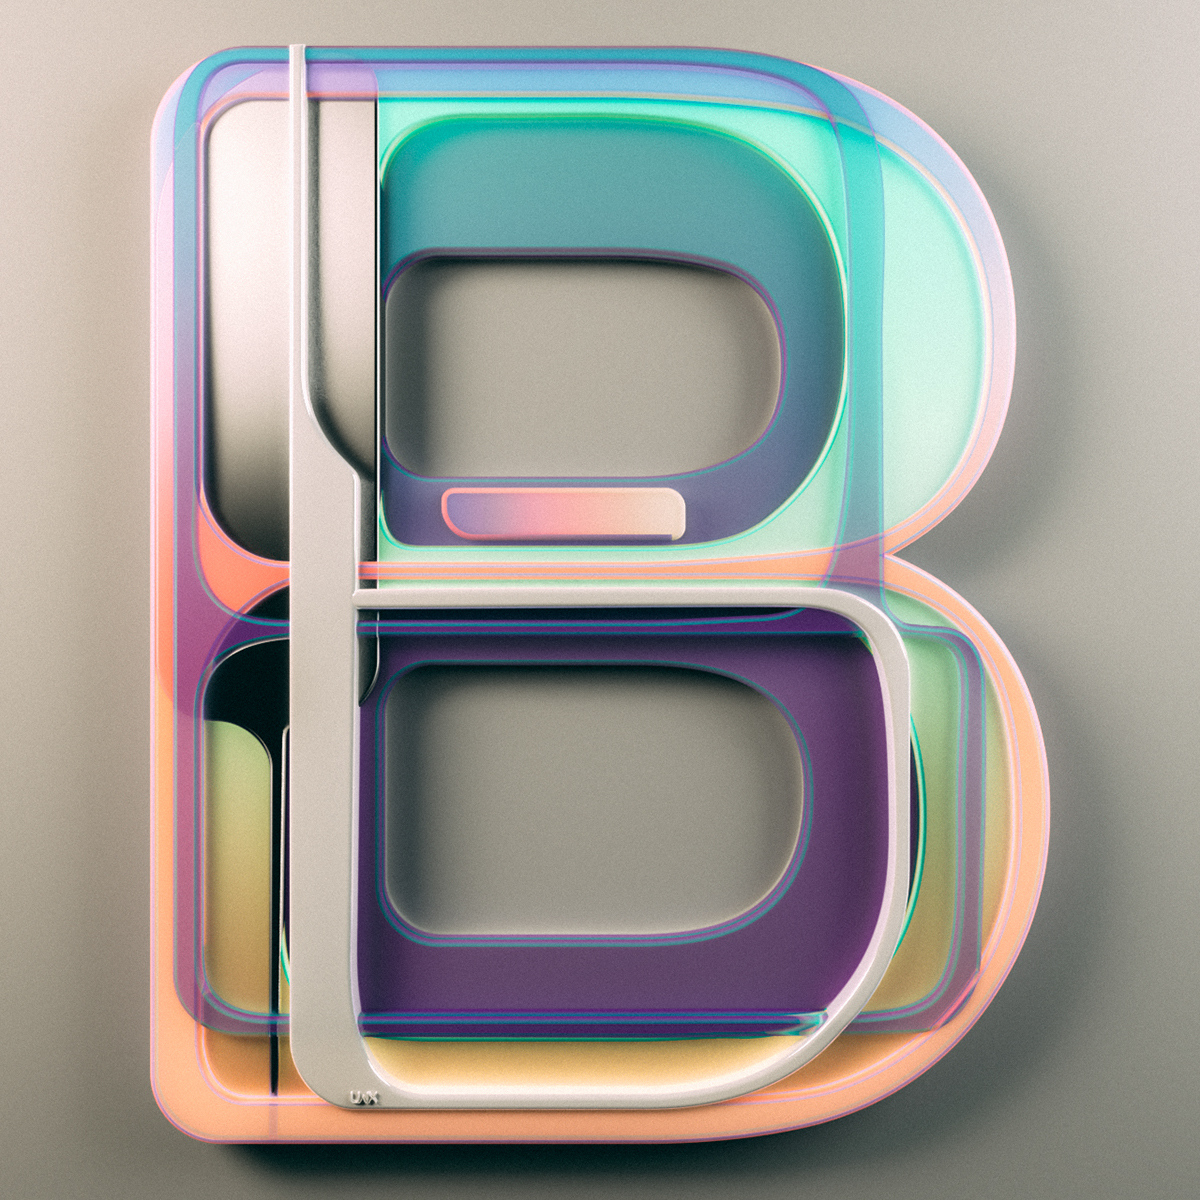 Inventive Typography by Leonardo Betti